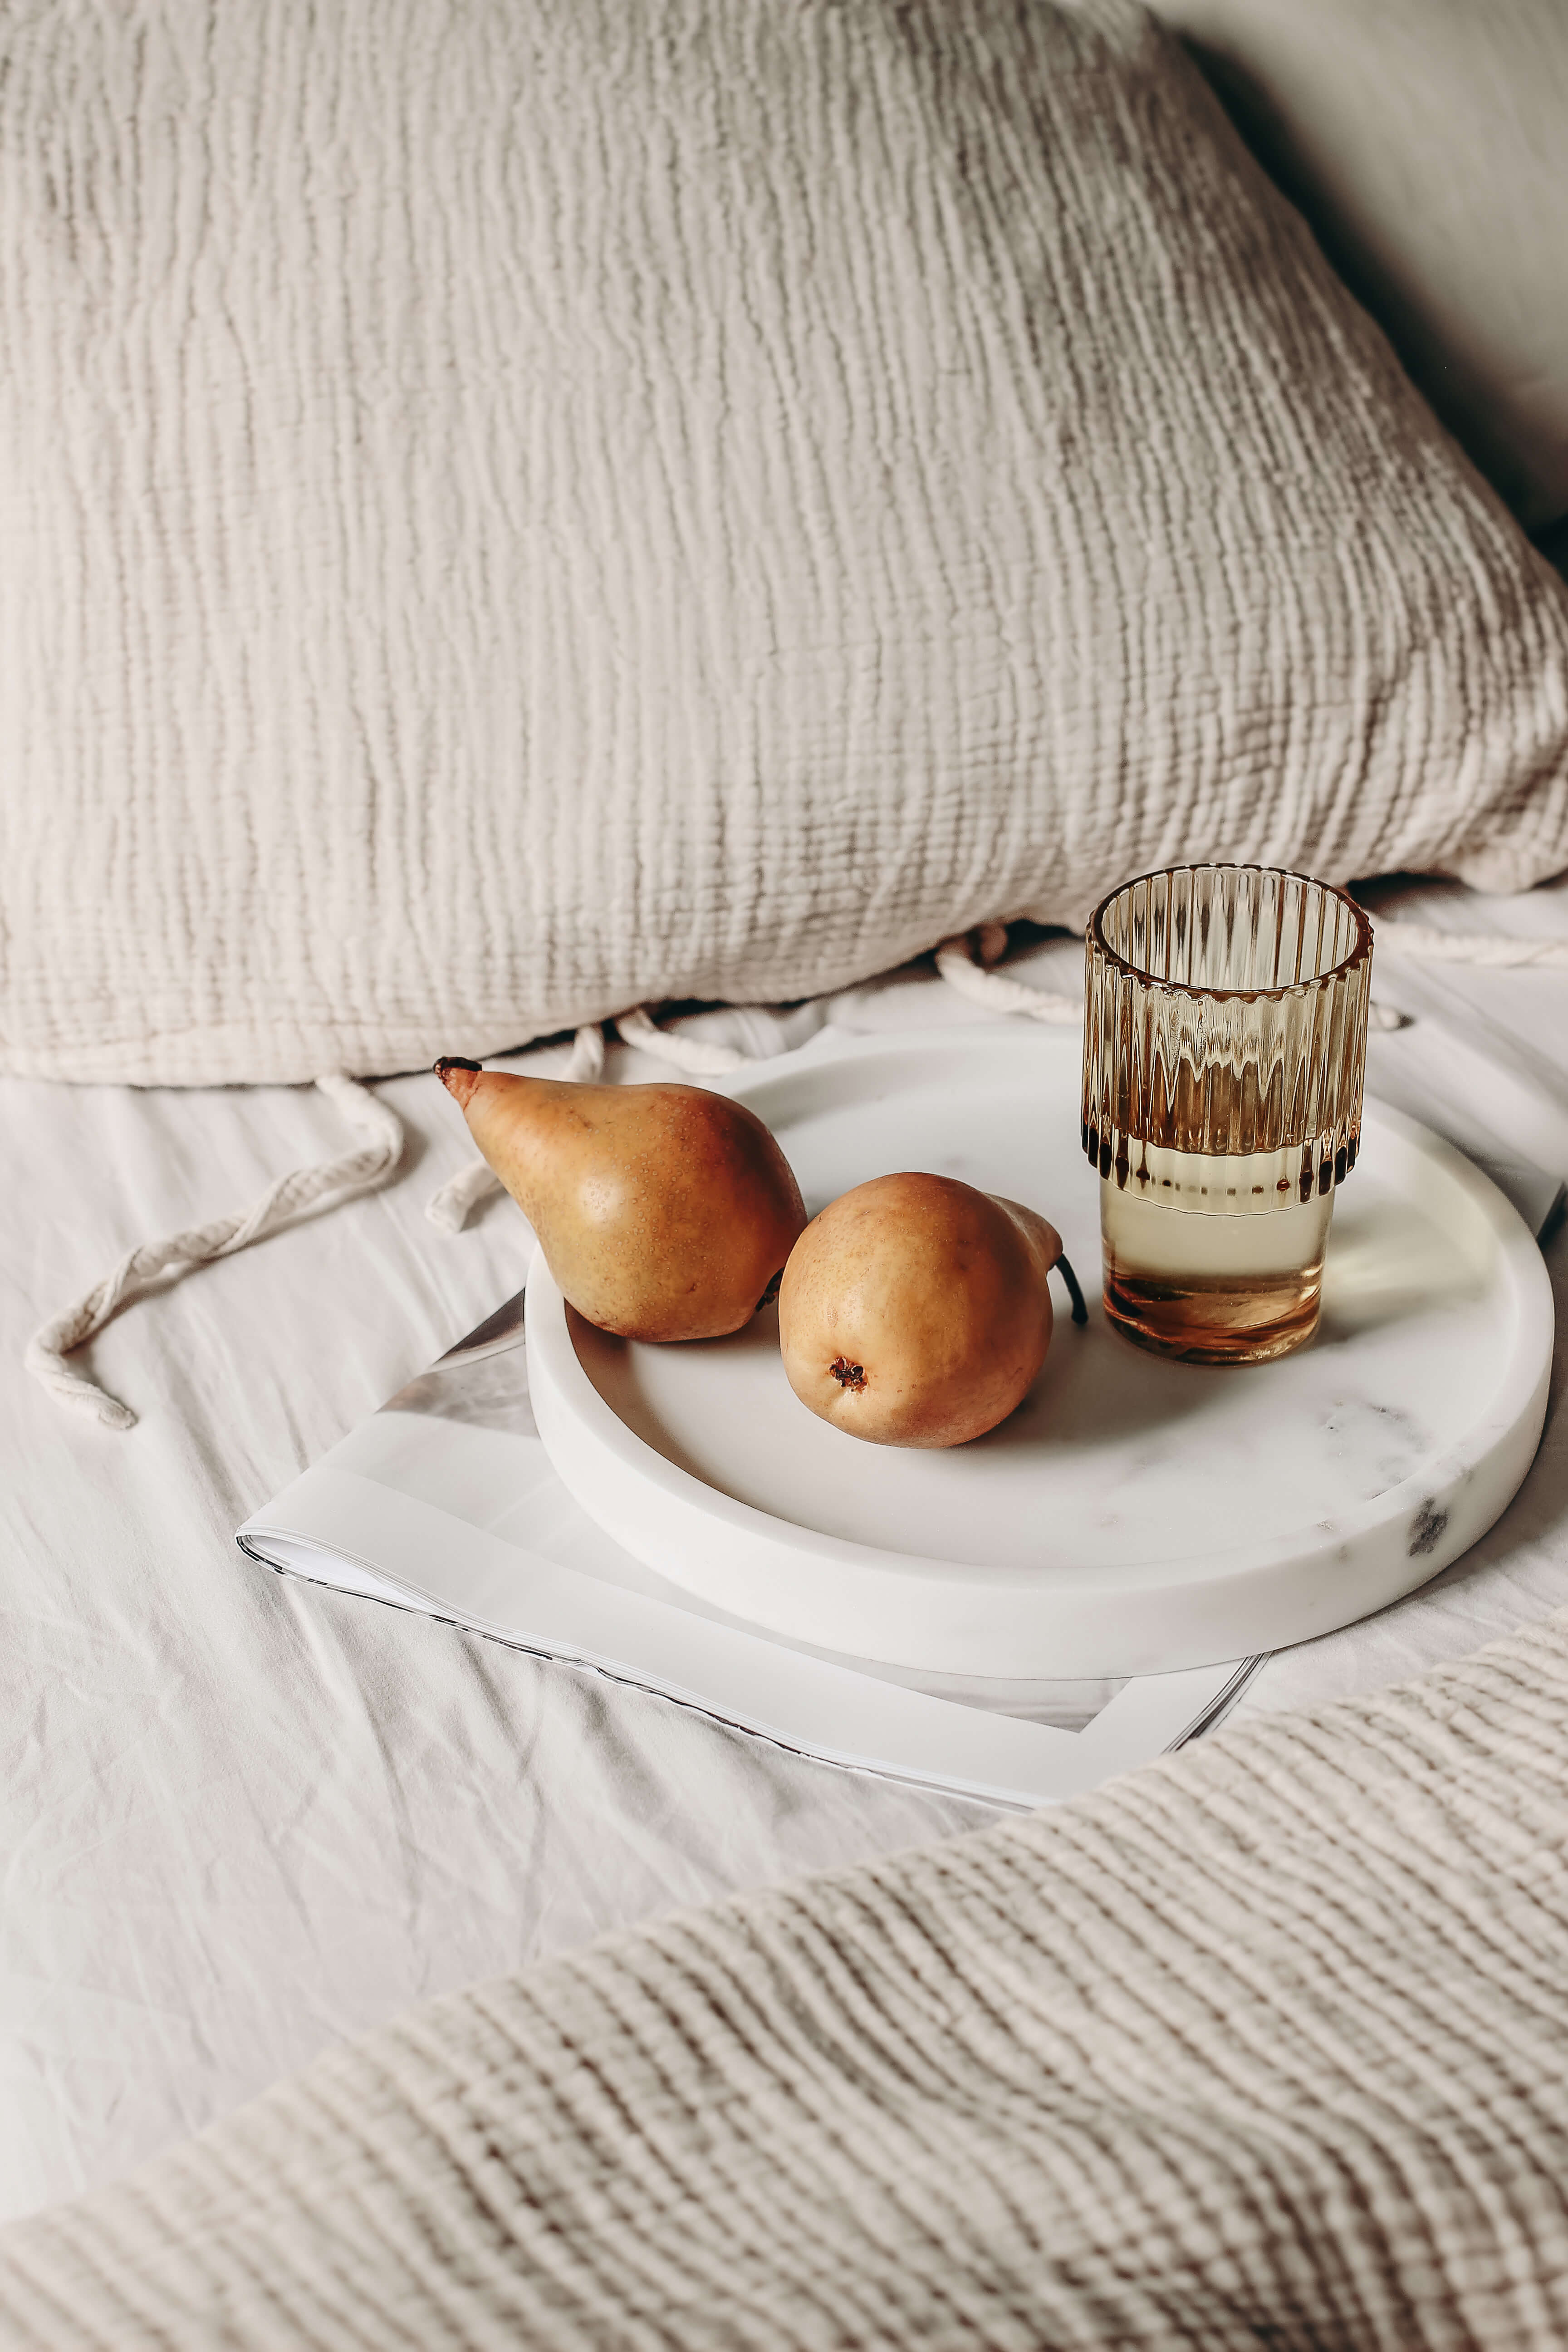 Pears and glass on a tray in bed